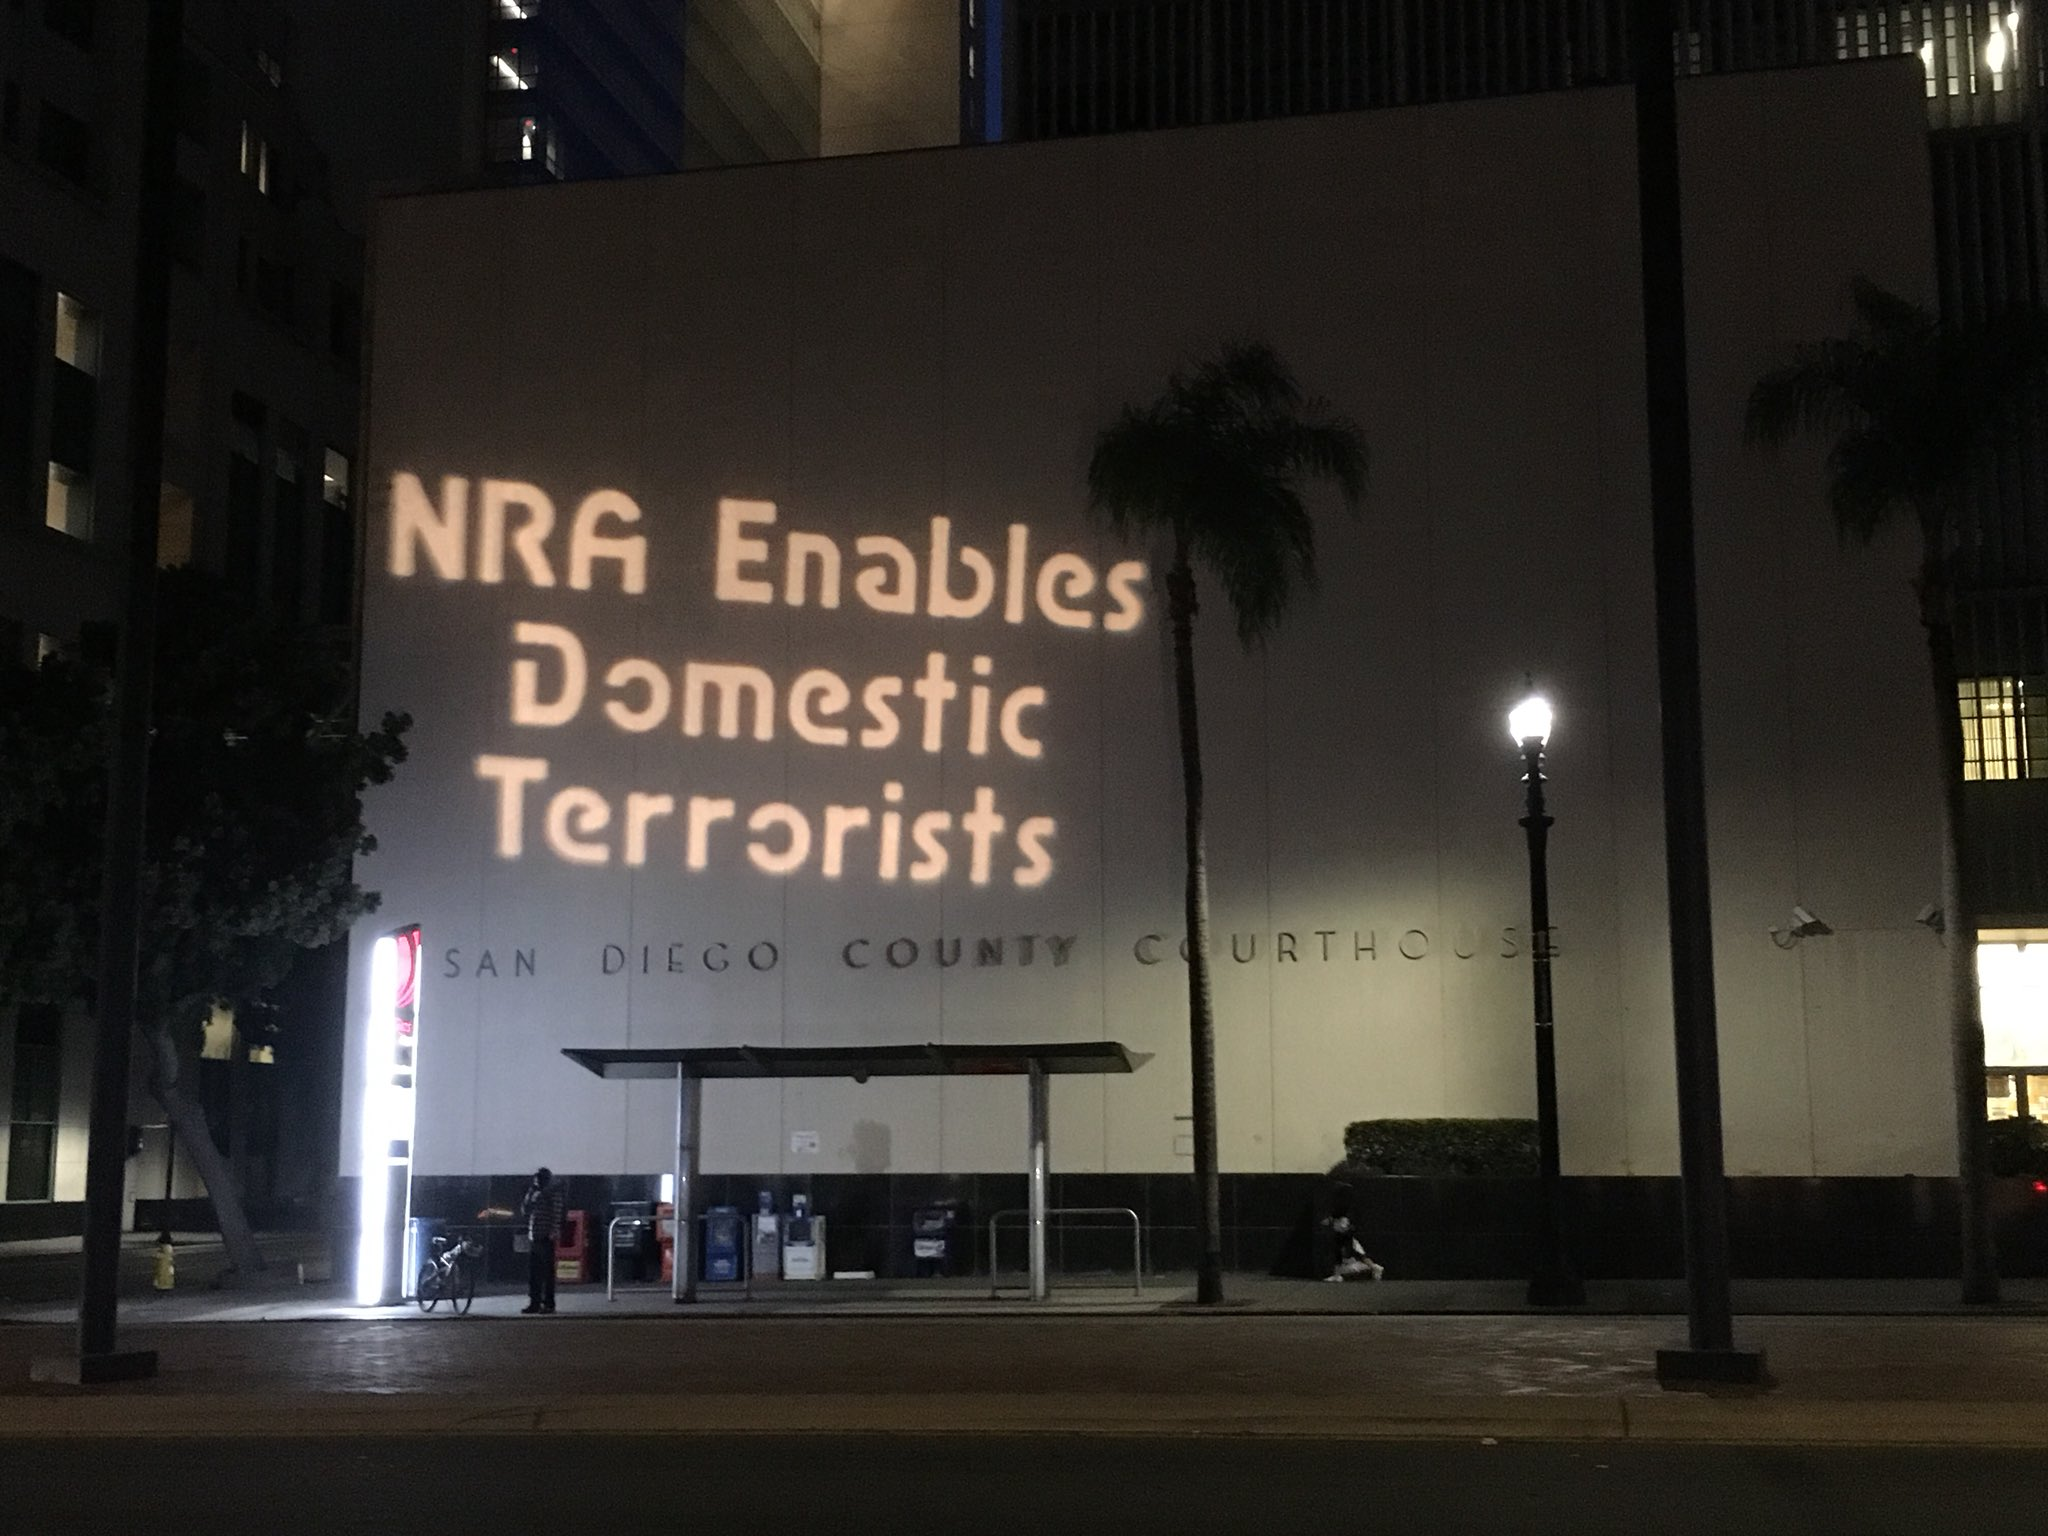 SanDiego-NRAenables-Courthouse.jpg